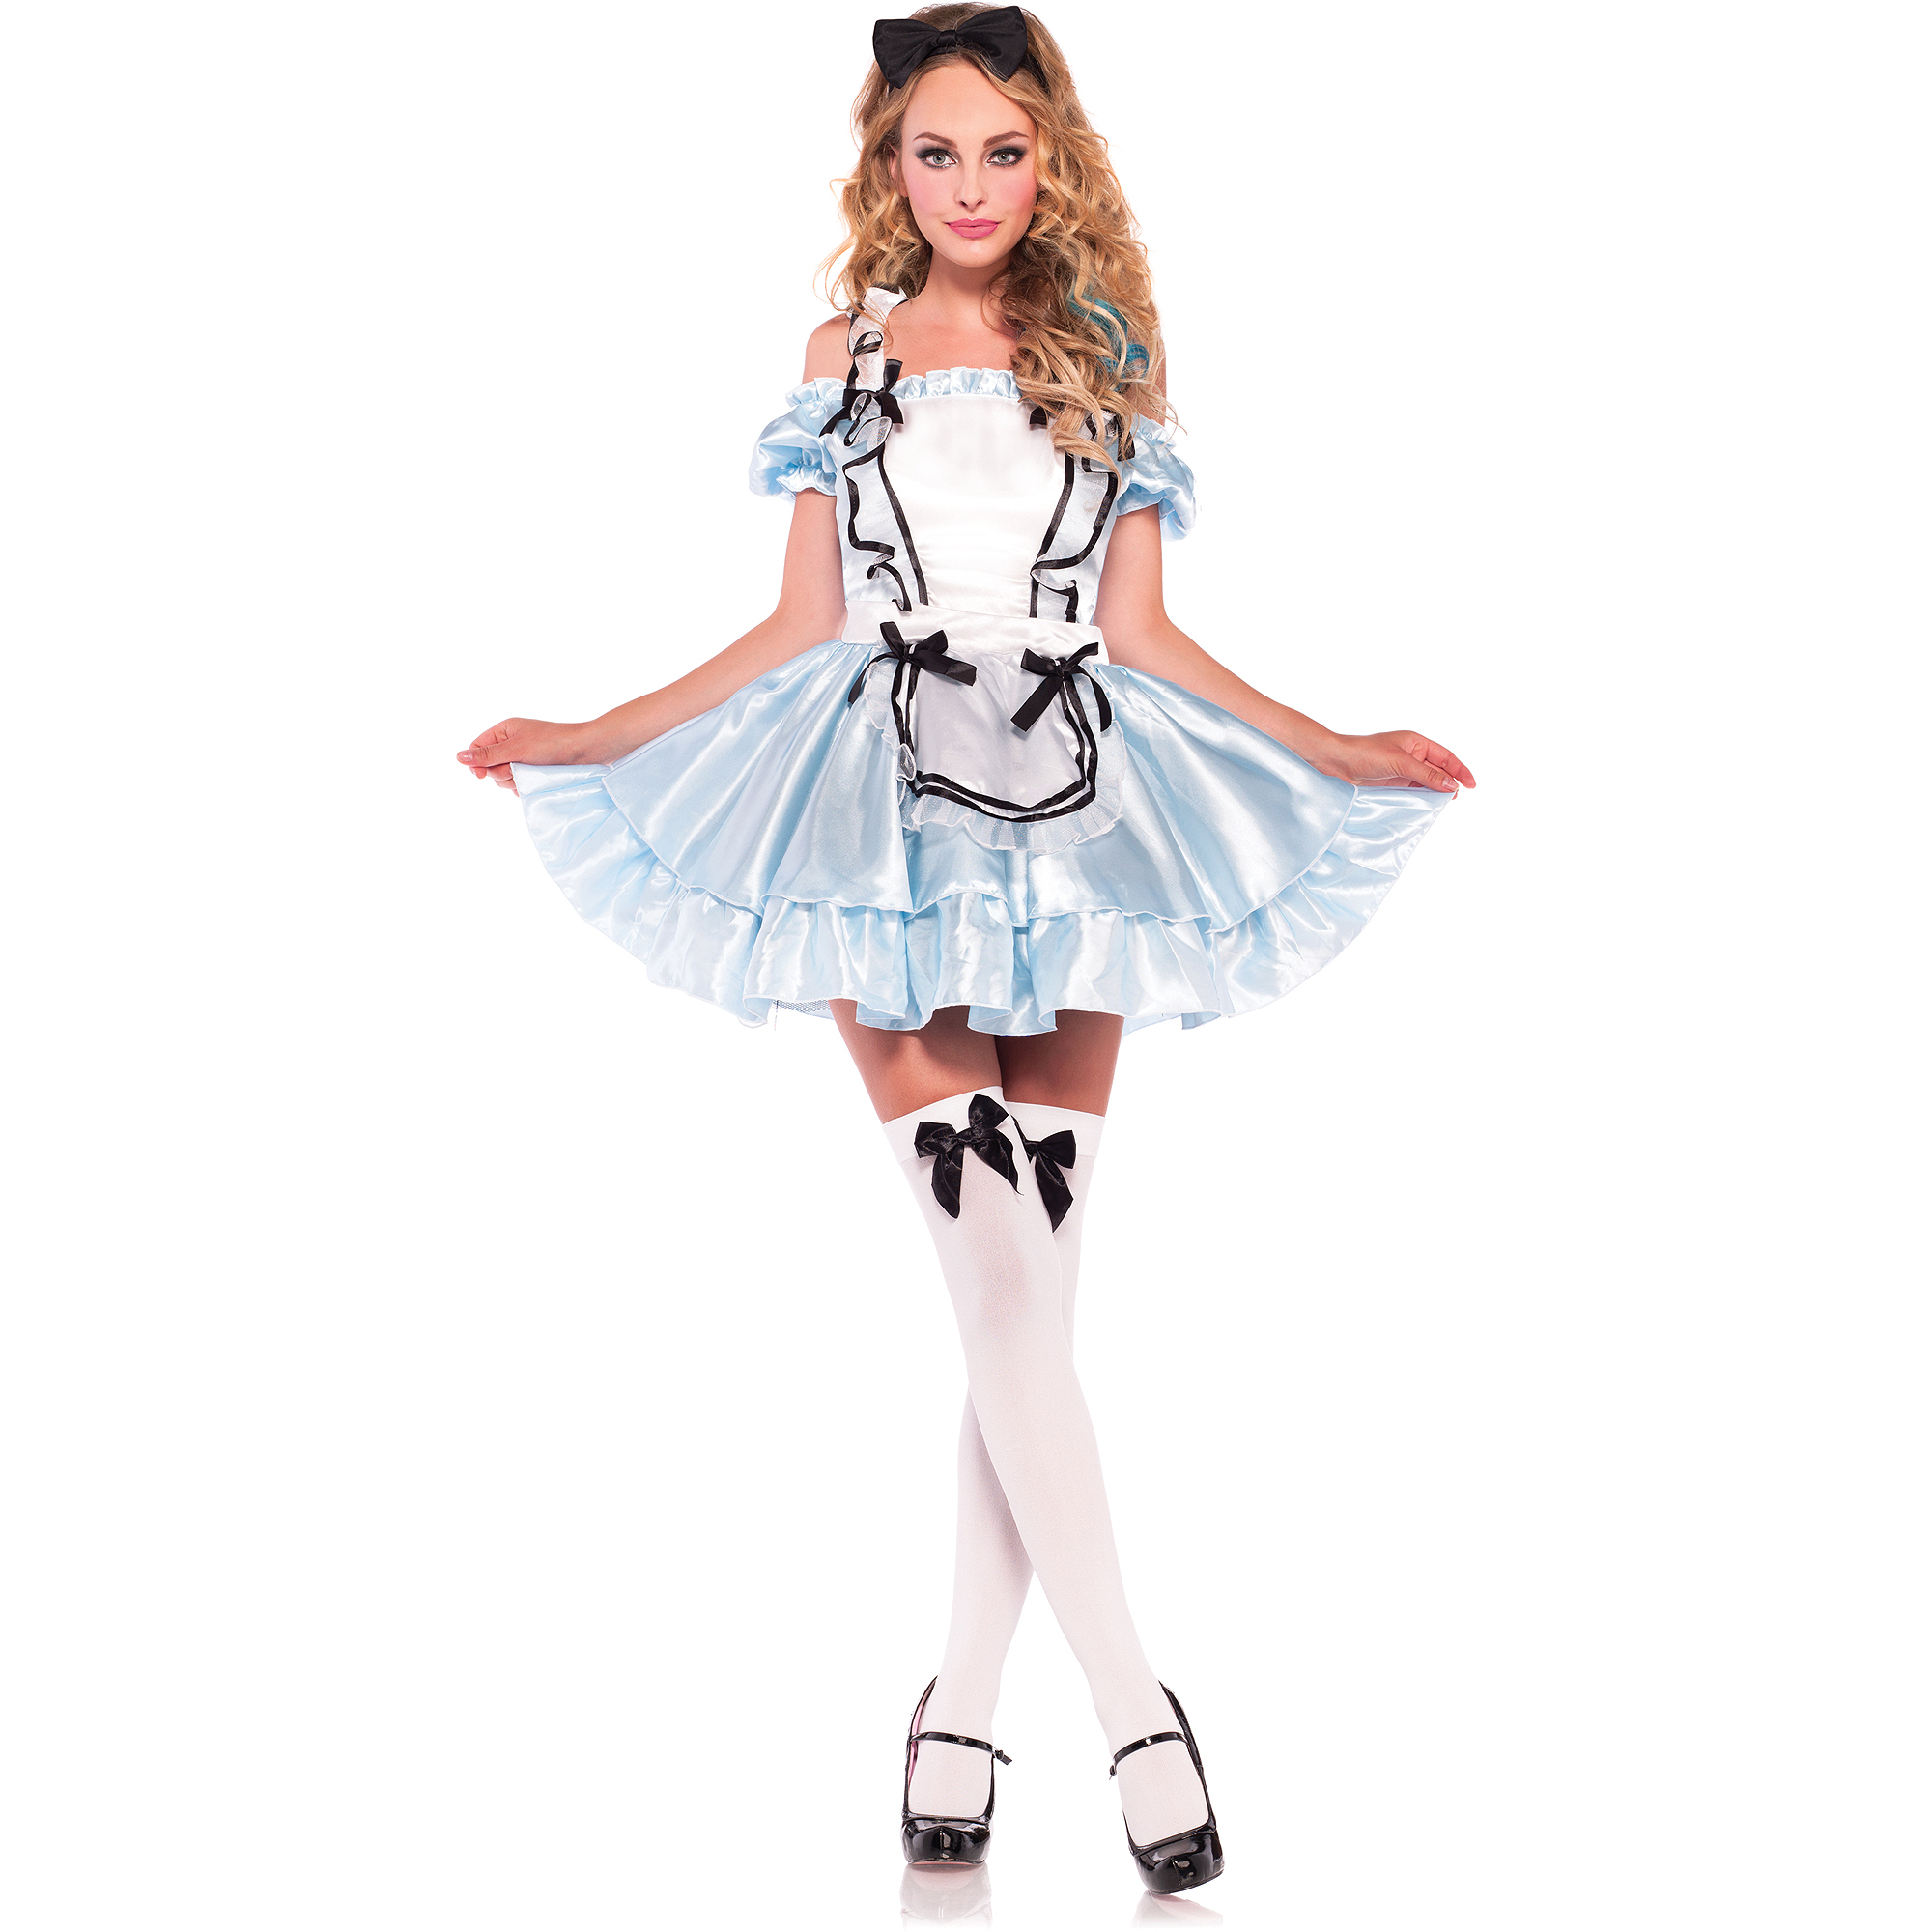 darling alice adult halloween costume walmartcom - Walmart Halloween Costumes For Baby